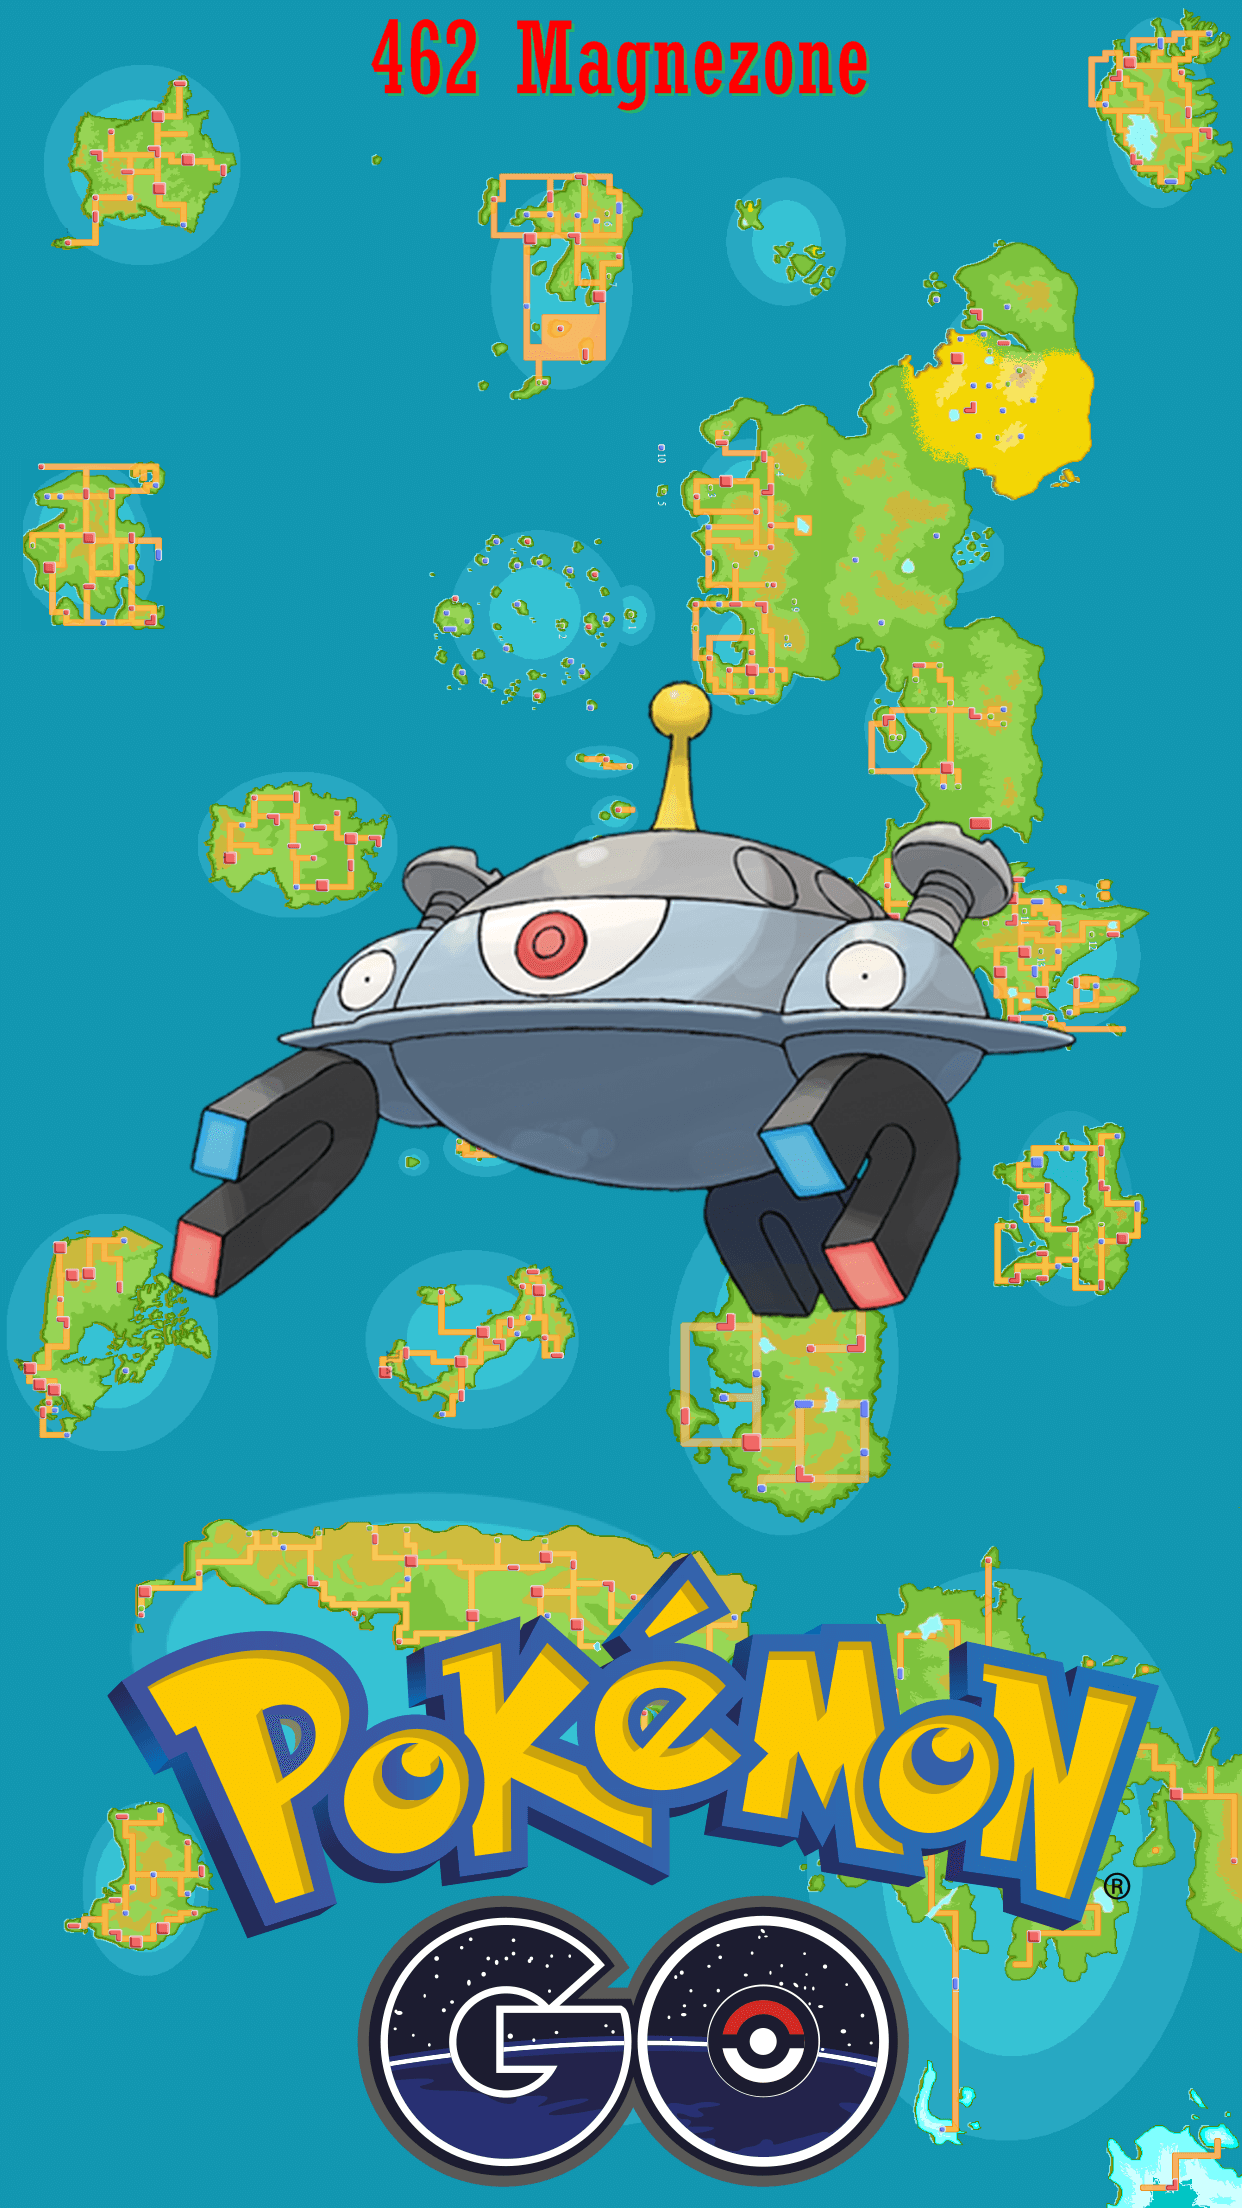 462 Street Map Magnezone | Wallpaper